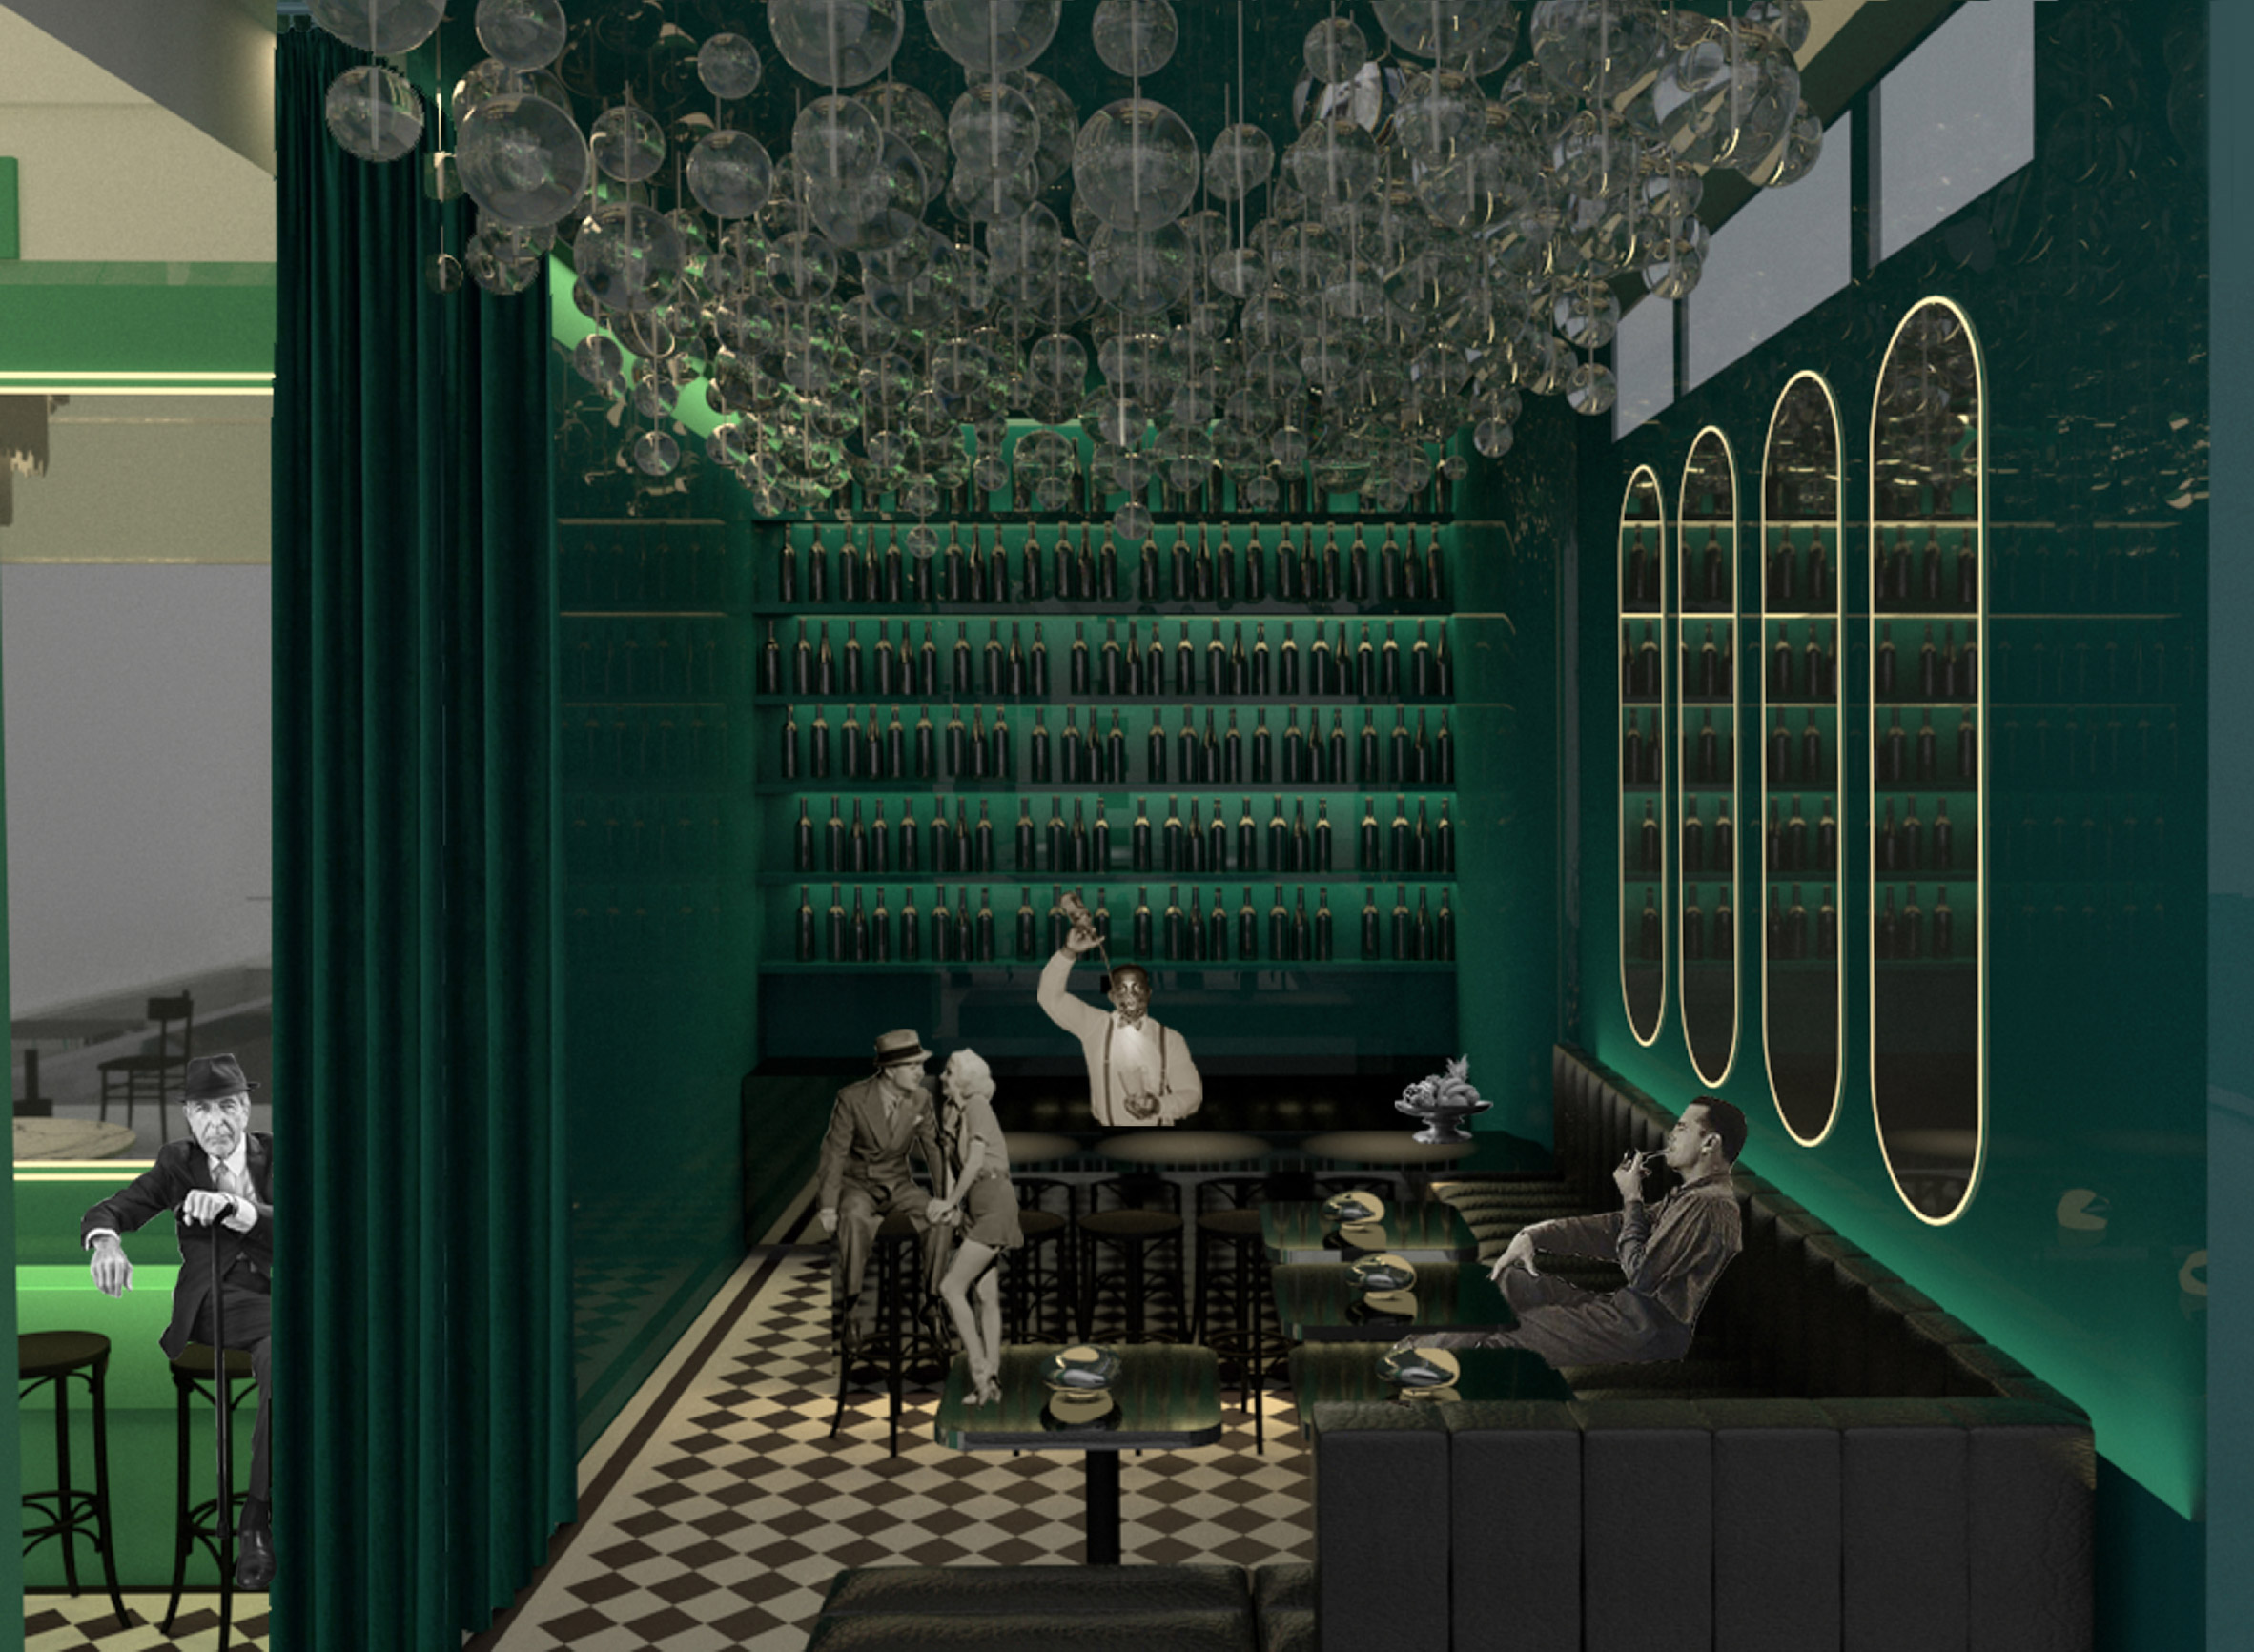 Das Karl – Restaurant in the Otto Wagner Pavilion by Sissi Kasacek